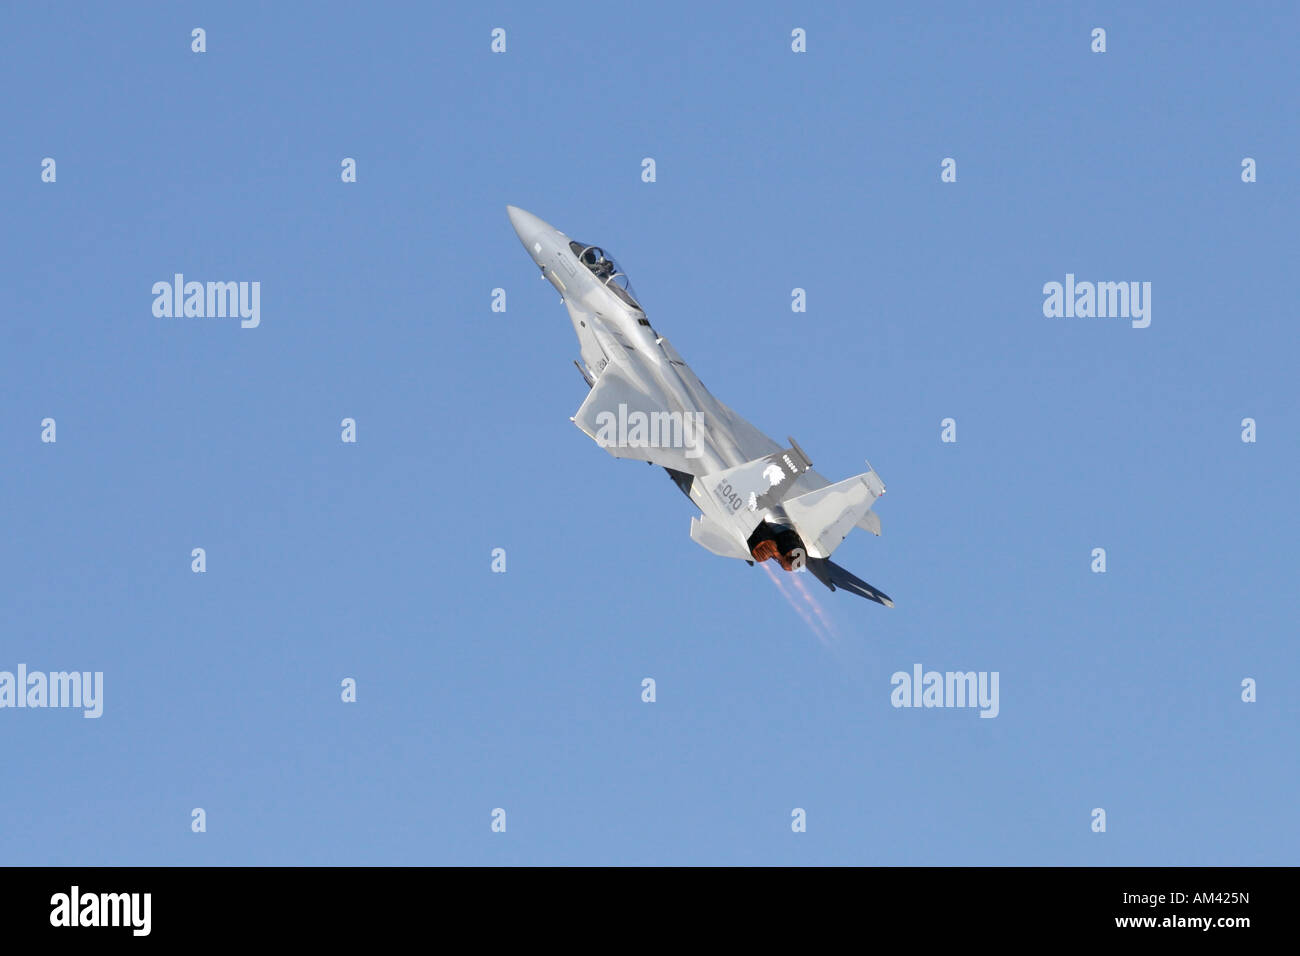 F16 in a steep climb against a blue sky Stock Photo